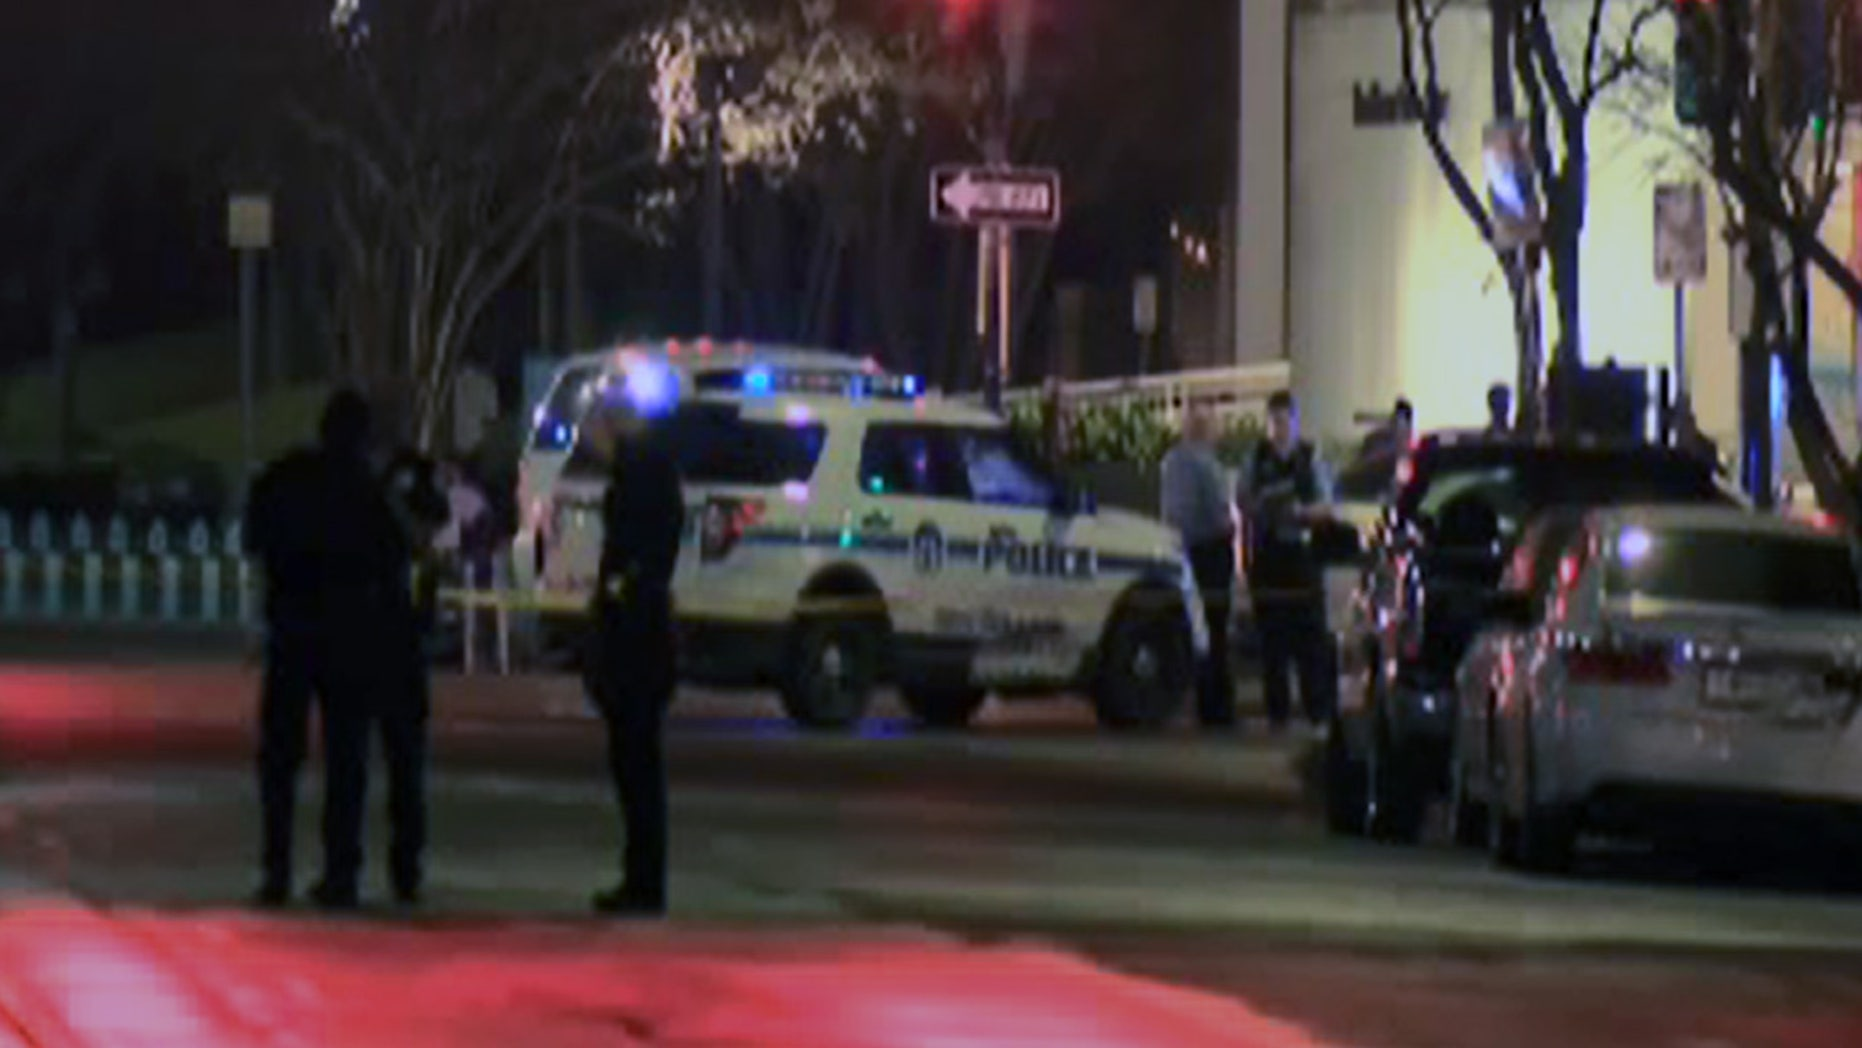 Police officers respond to the shooting in New Orleans' central business district Sunday night